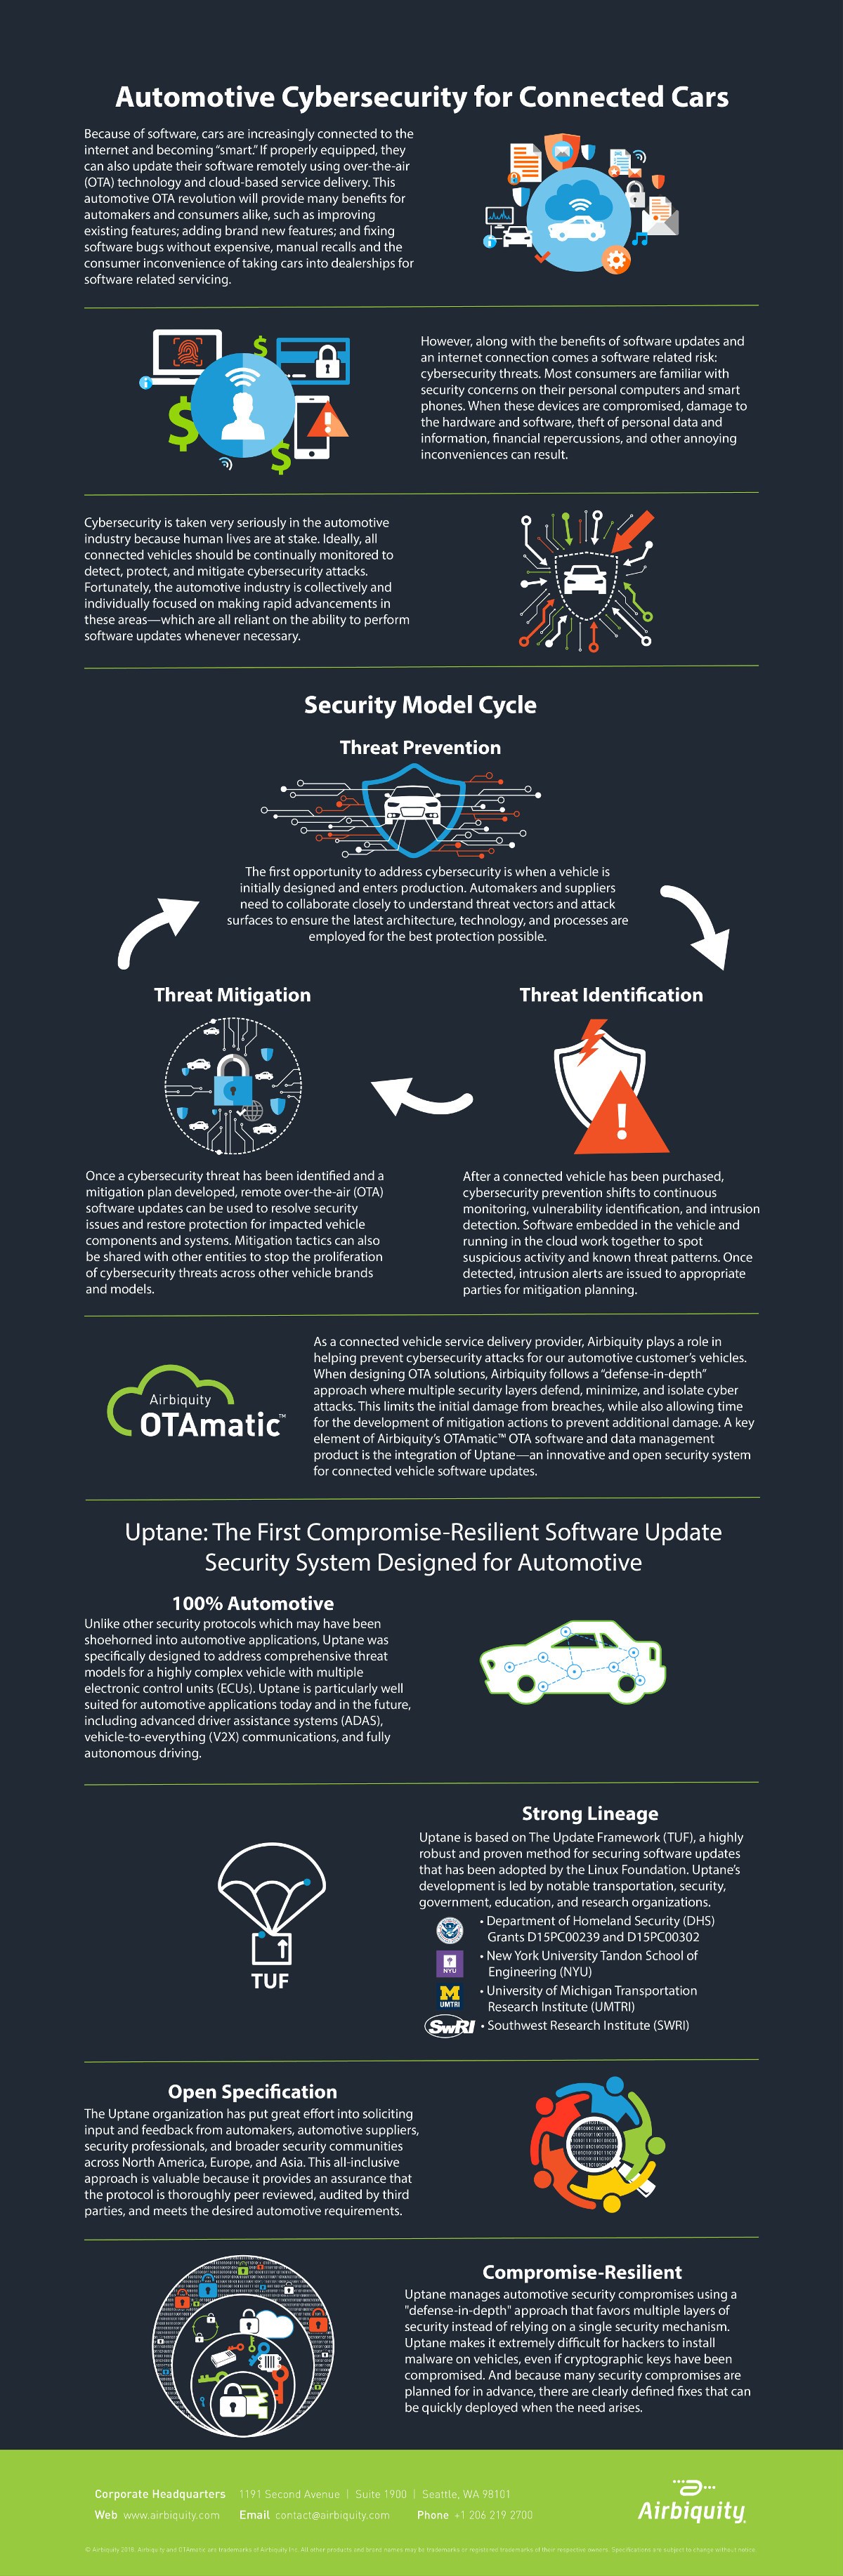 Airbiquity-Cybersecurity-for-OTA-Updates-in-Connected-Cars-and-Fleet-Vehicles.jpg